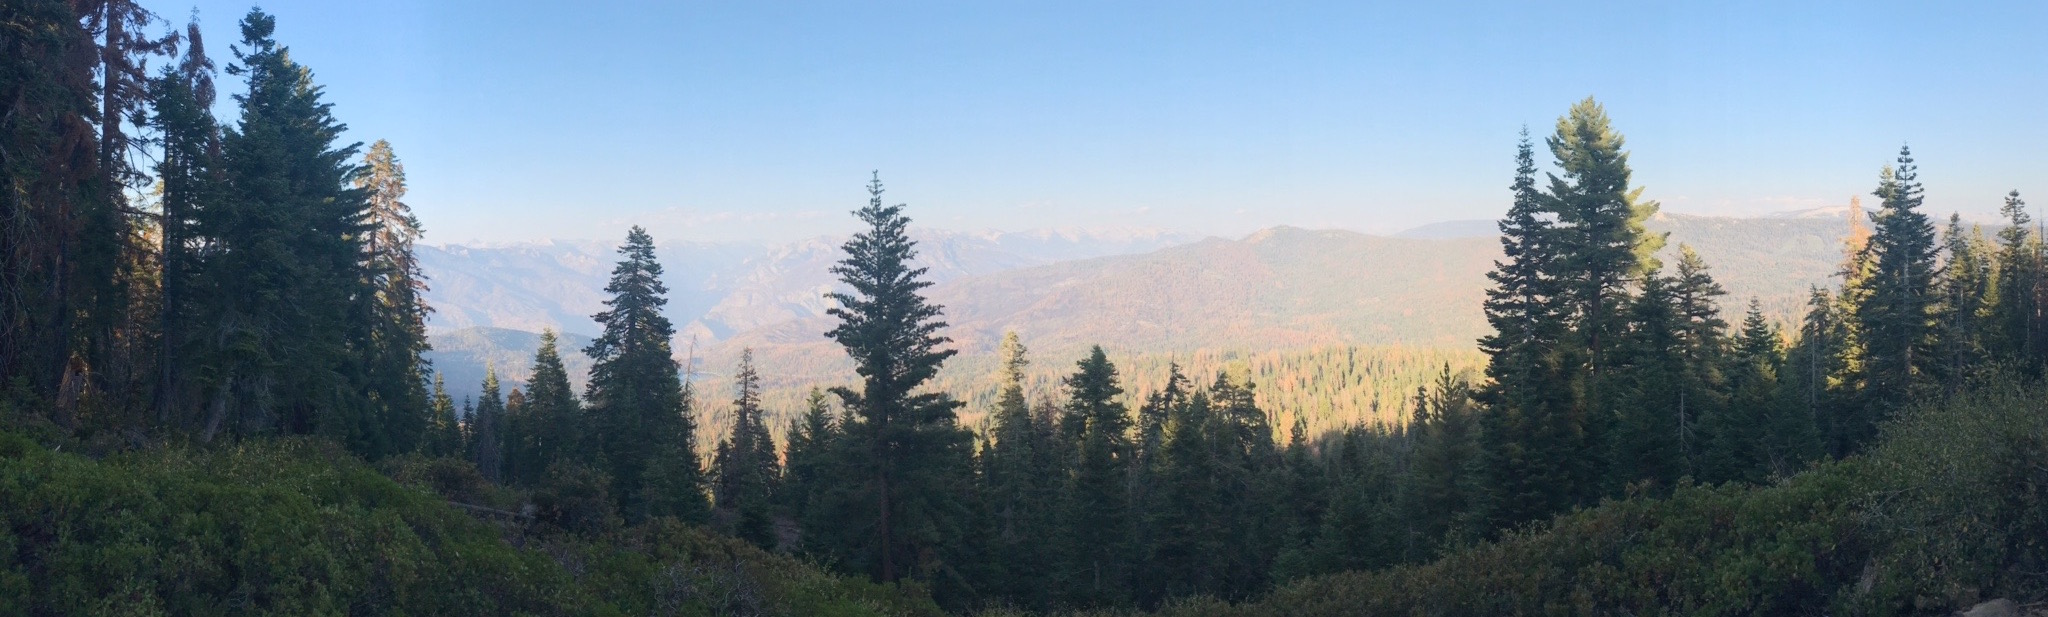 Breathtaking views await you at Sequoia and King's Canyon